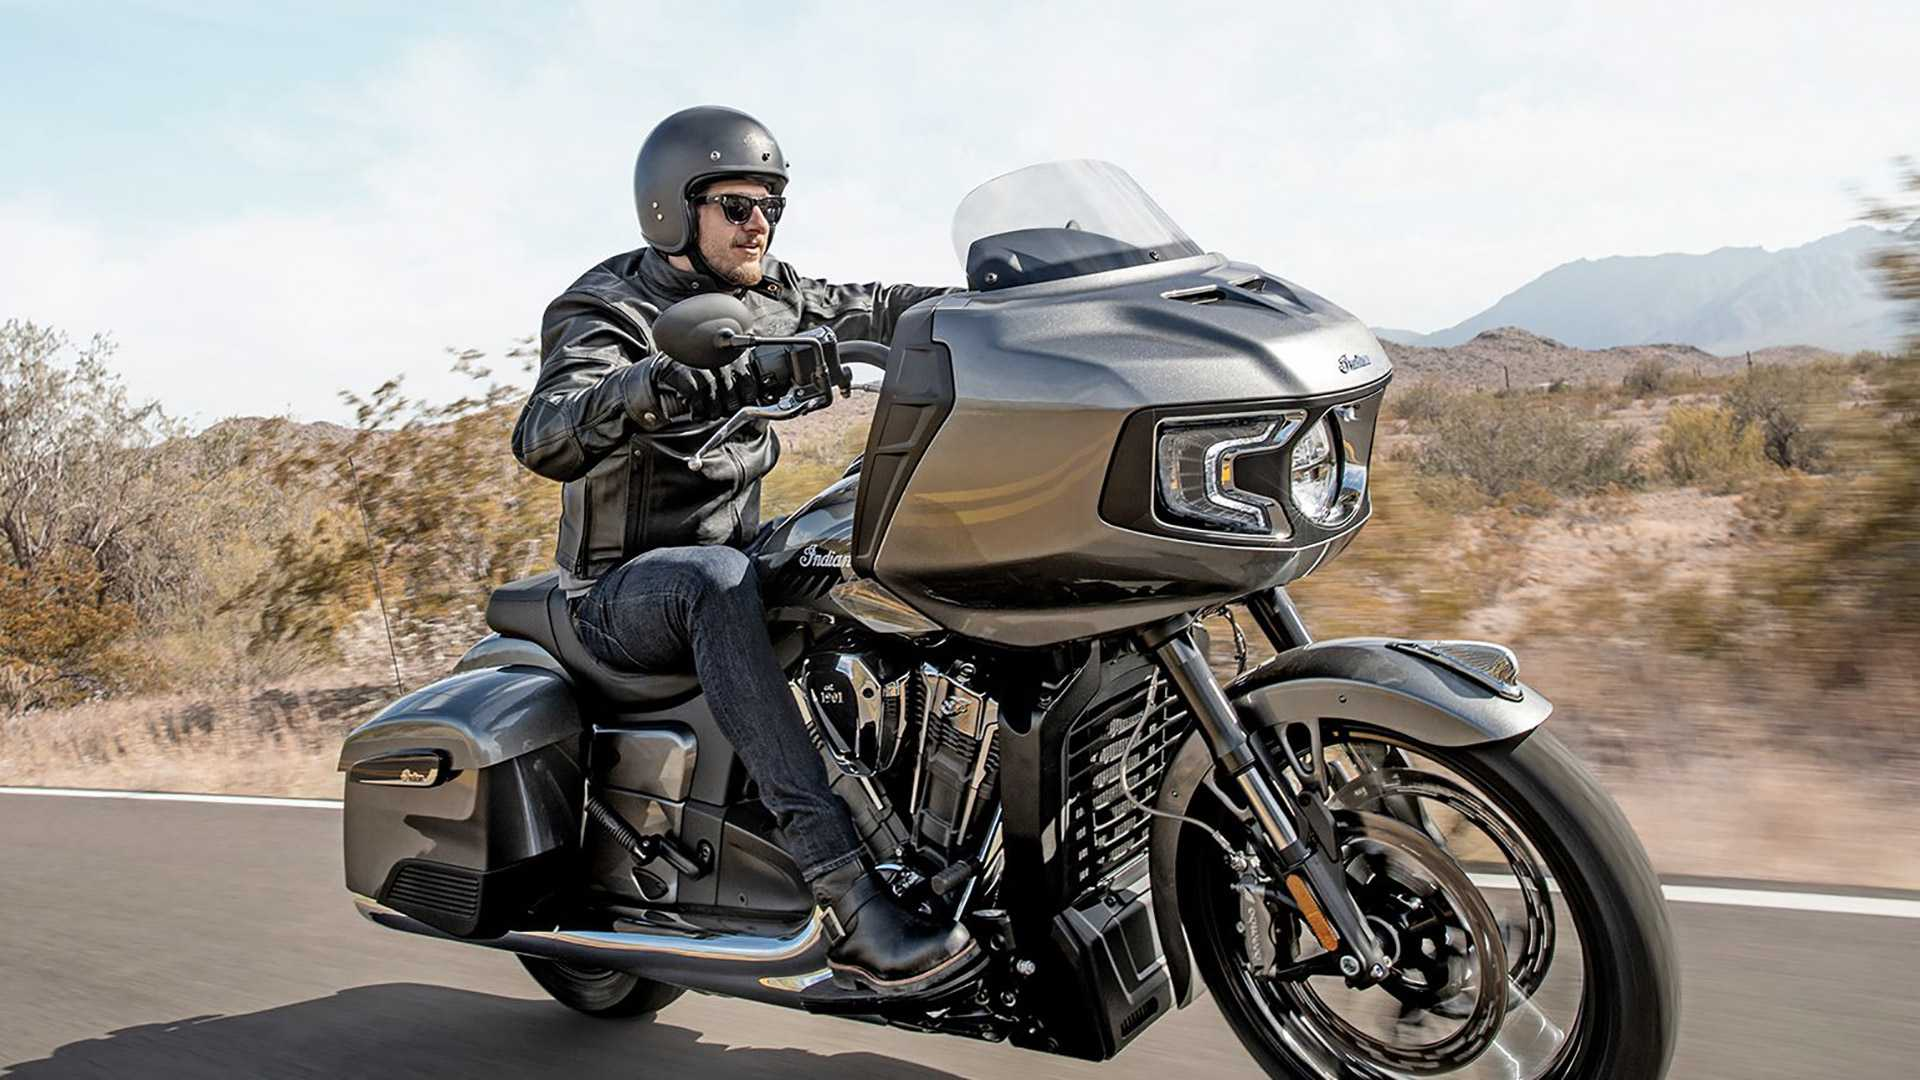 2020 Indian Motorcycle Challenger Specs